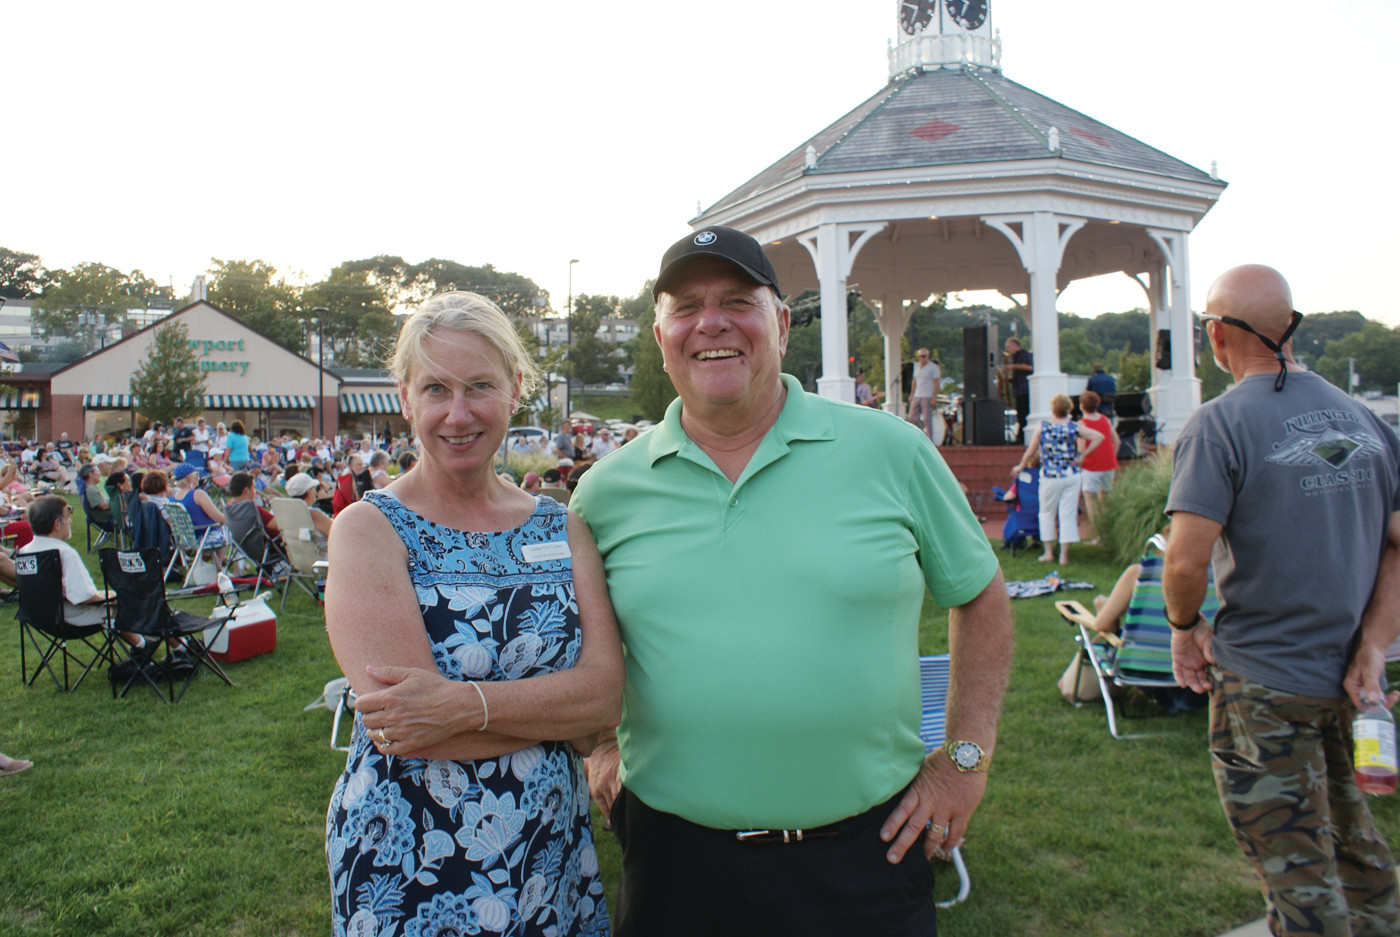 SERIES COORDINATORS: Pictured are Janice Pascone, Marketing Director for Garden City Shopping Center and Producer Paul Borrelli who brought the Summer Concert Series to the public for free every Wednesday evening throughout the summer.